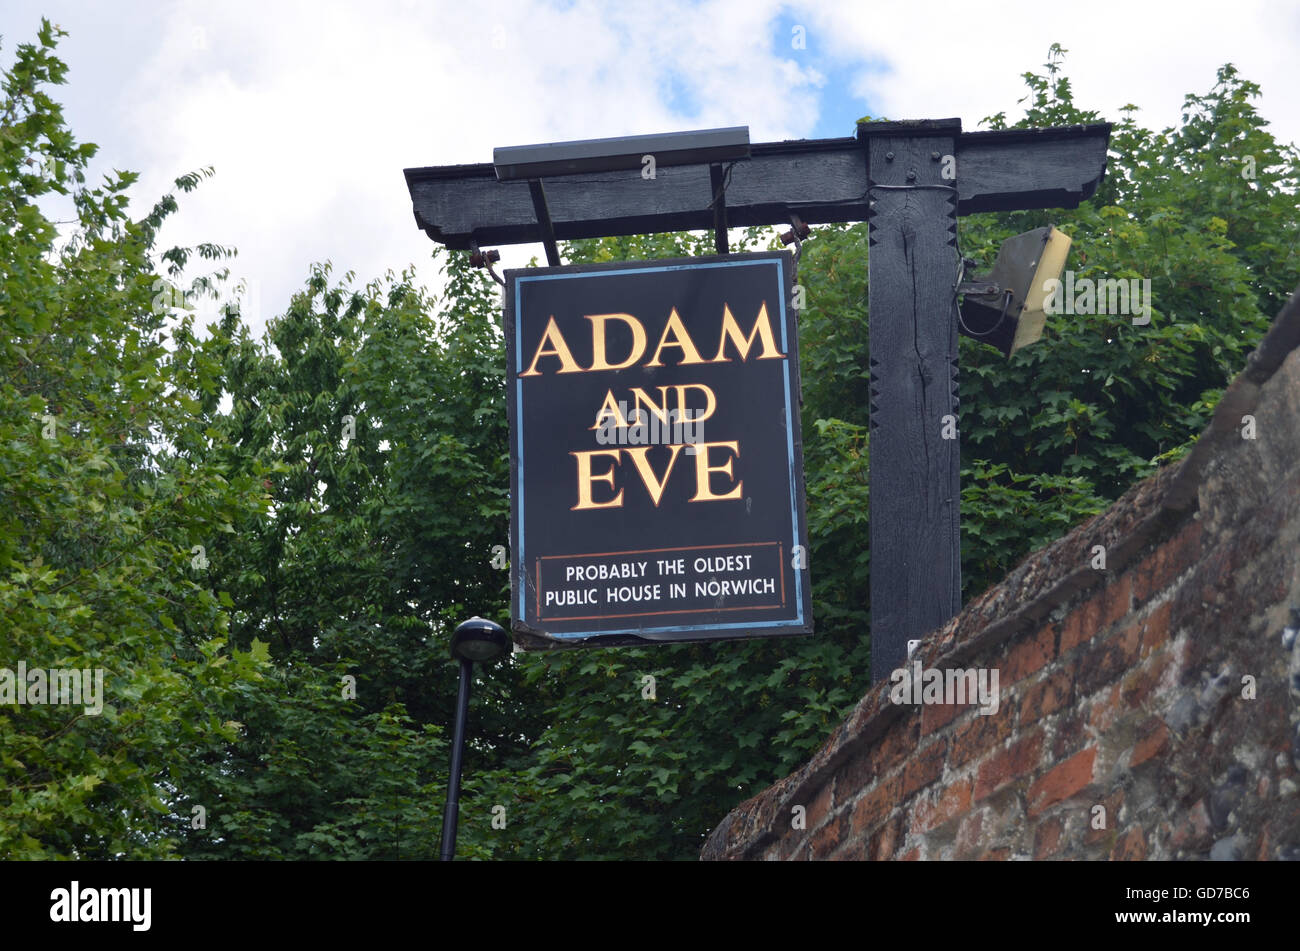 Adam & Eve pub, probably the oldest pub in Norwich, UK - Stock Image